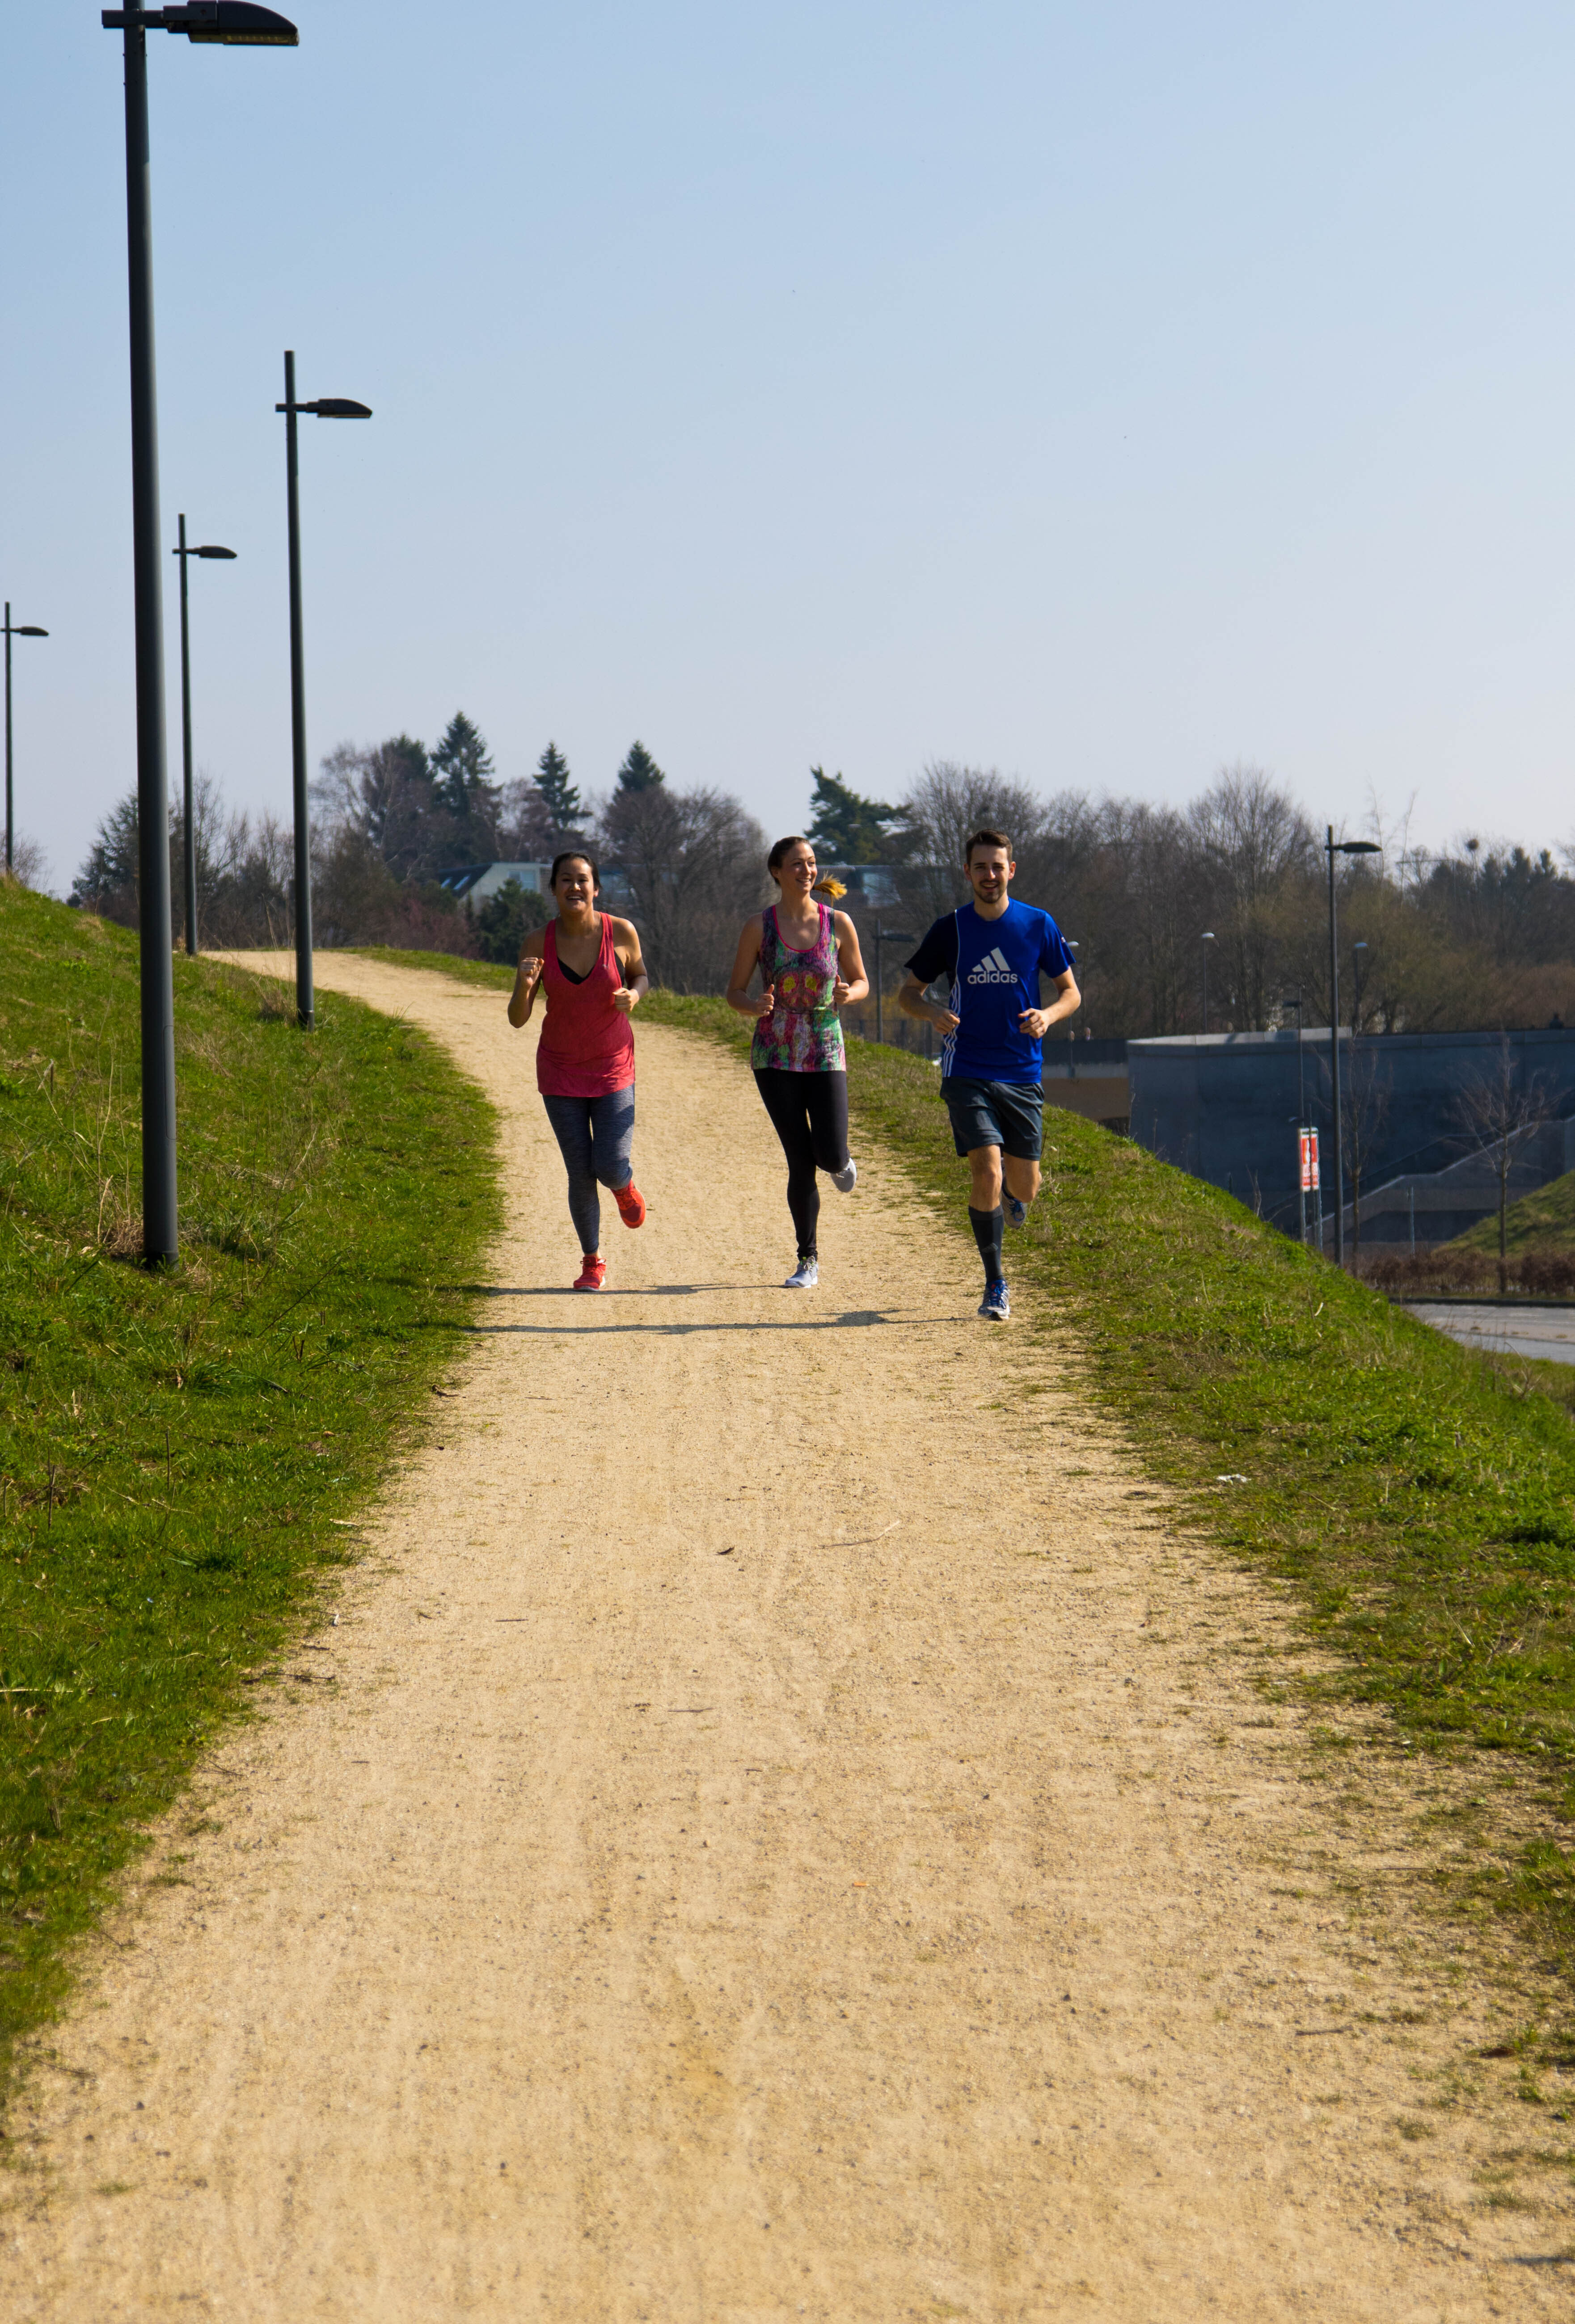 Runners on campus